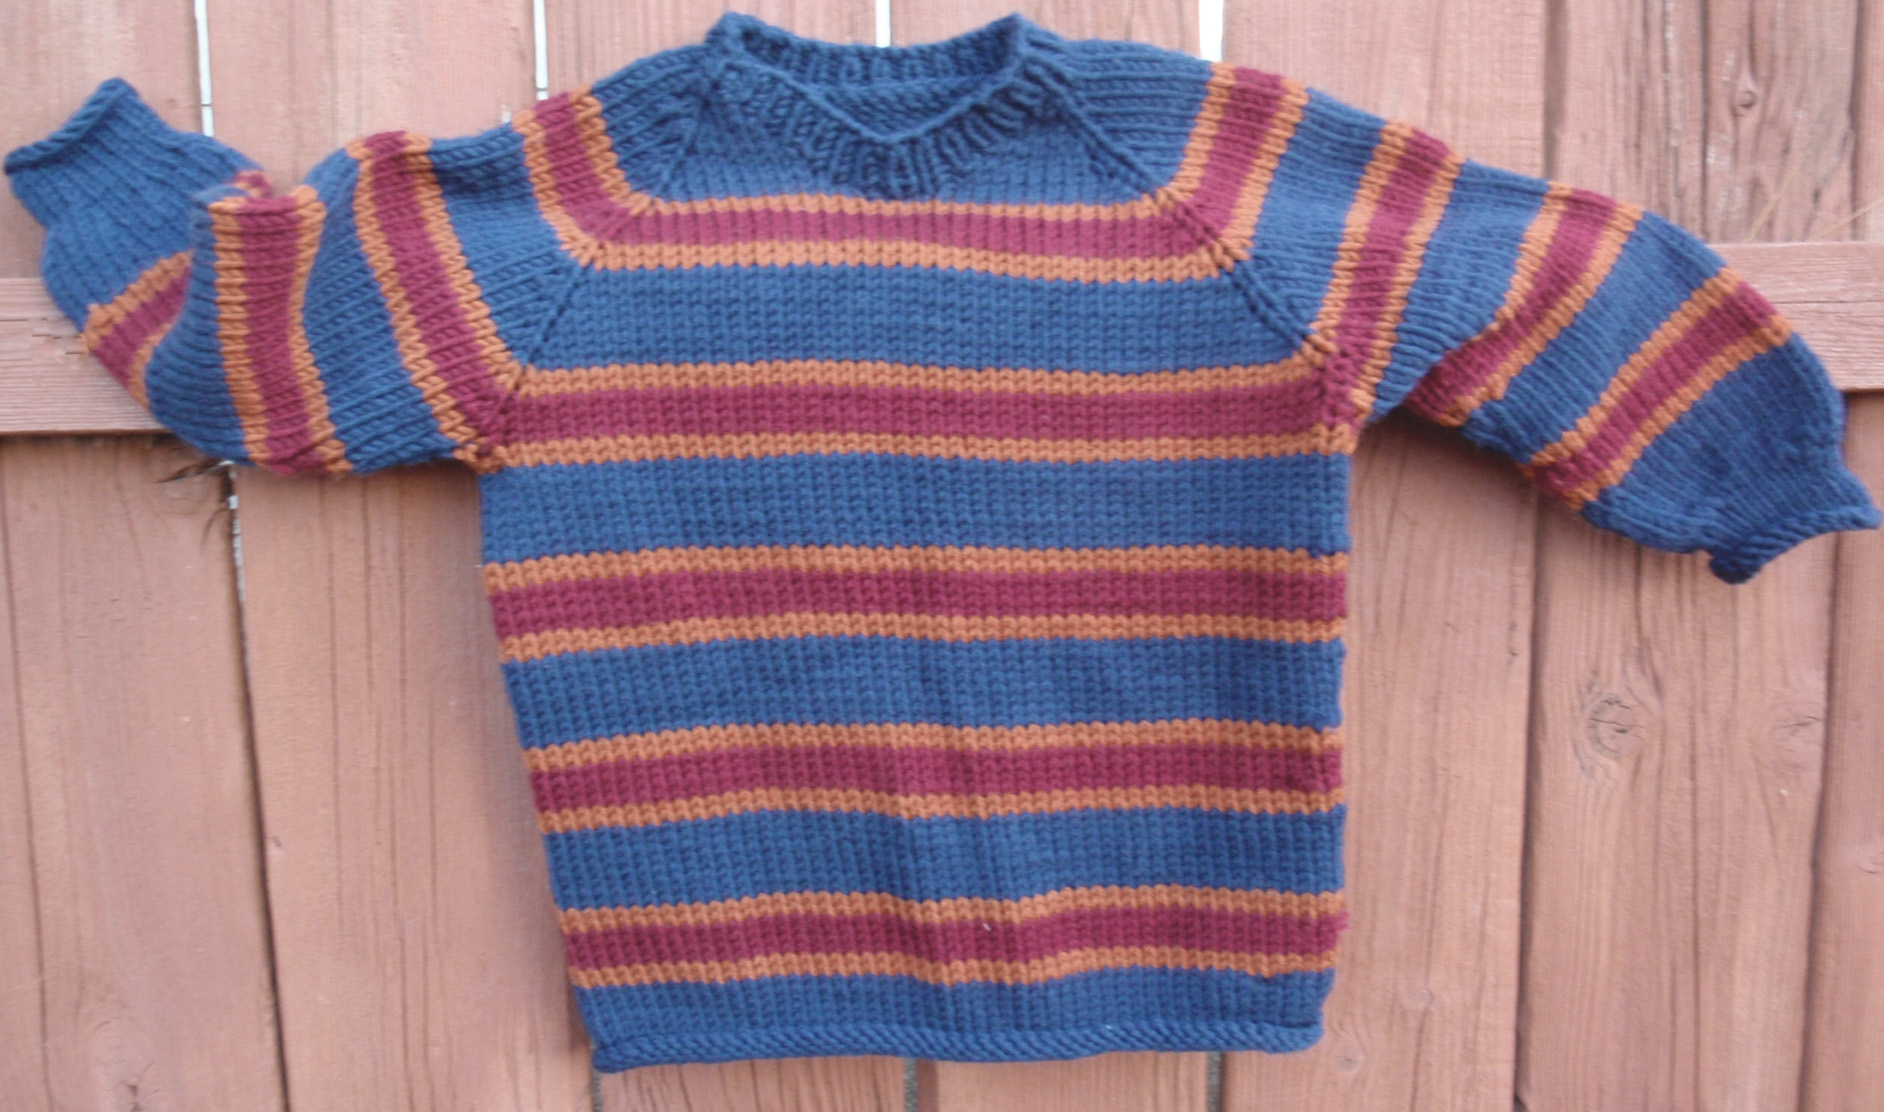 04 Childrens Top Down Raglan Pullover Bulky Egan004 Yarn